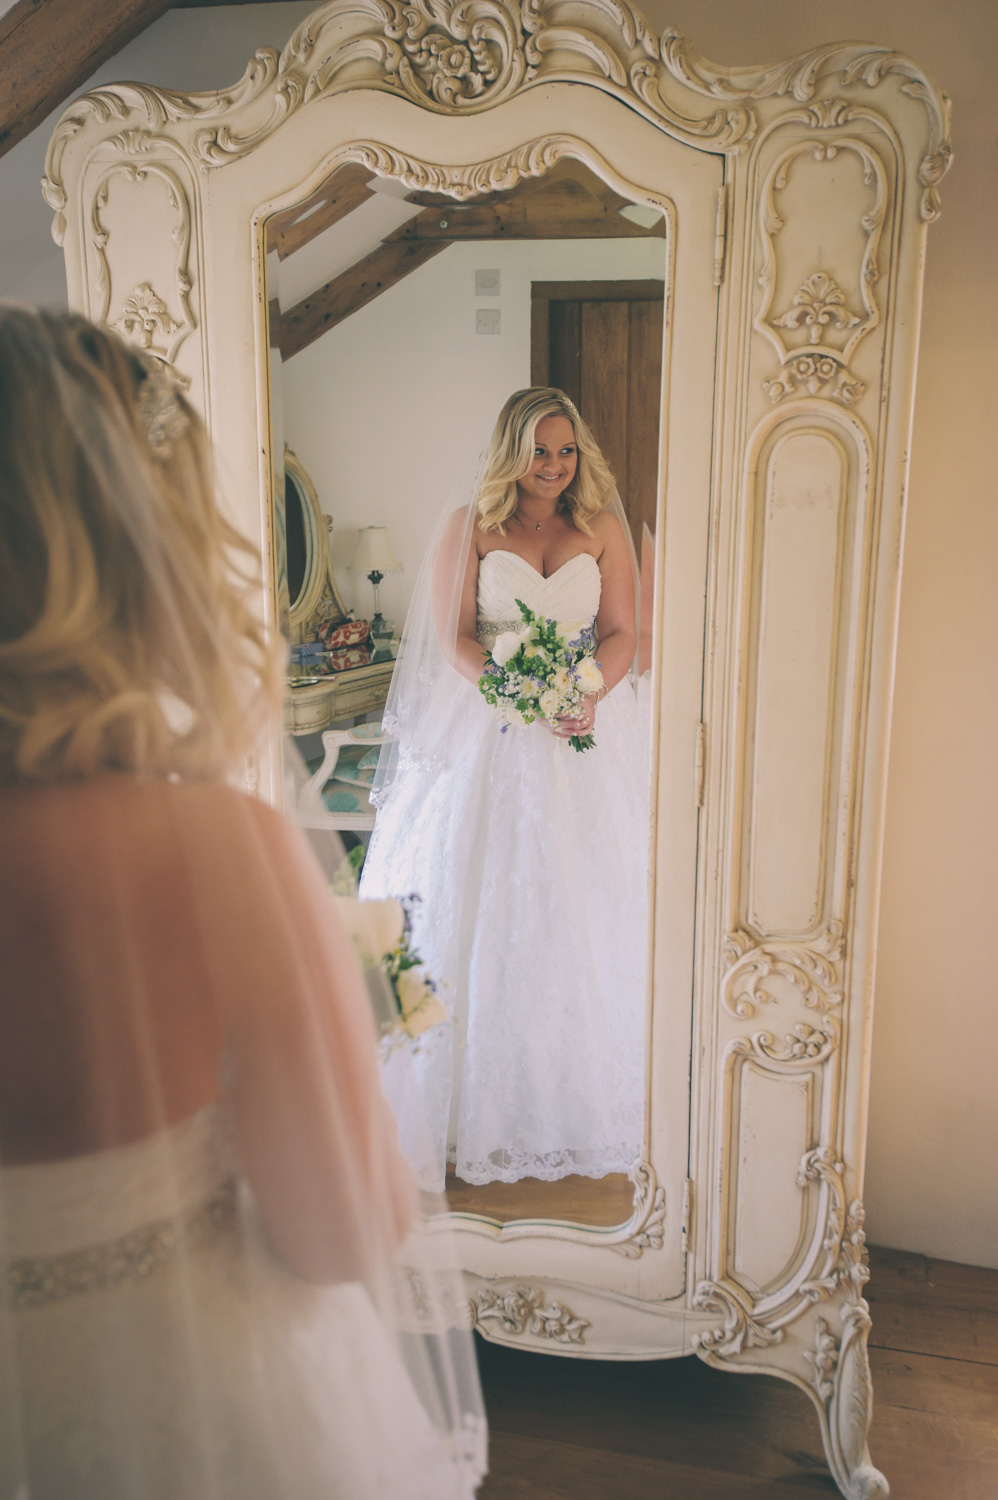 wedding-at-lanyon-manor-35.jpg